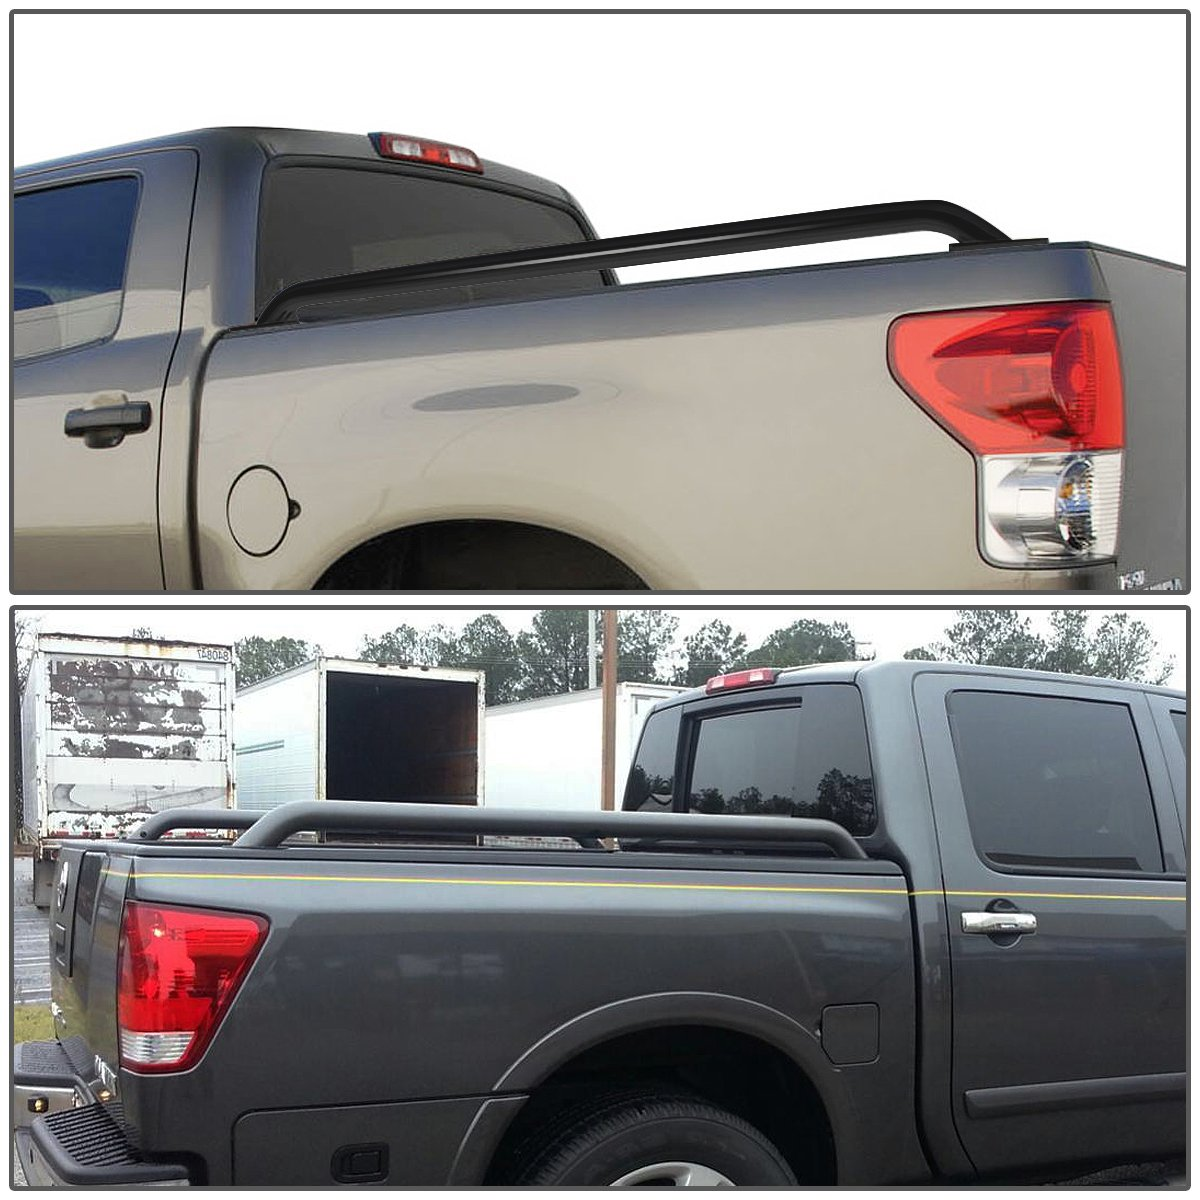 Pair of Mild Steel Black Truck Side Bar Rail For Sierra//Silverado 6.5ft Bed Cab